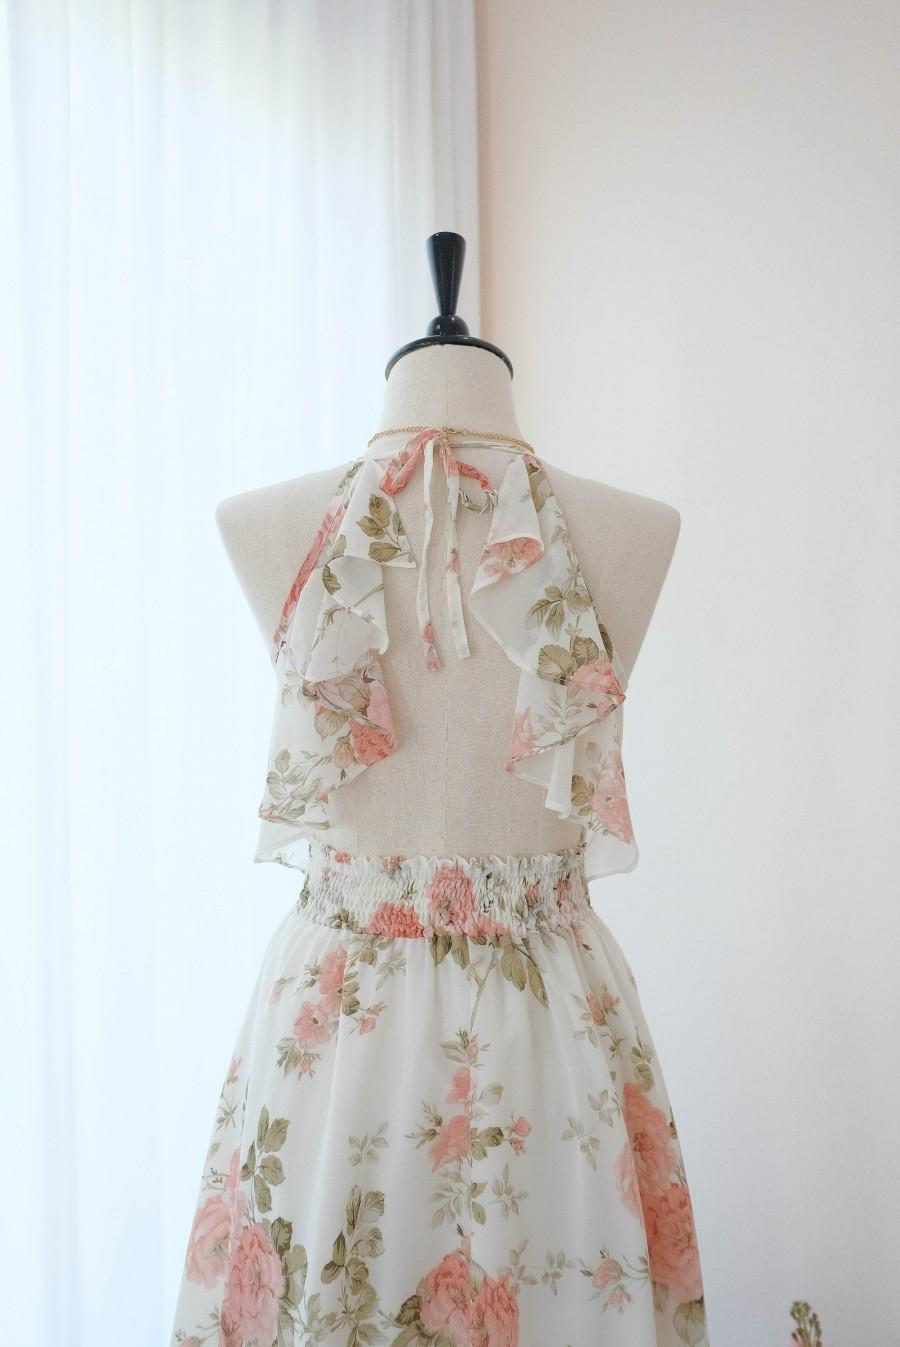 Mariage - Creamy white dress Peach floral Bridesmaid dress Mid Length Cocktail Dress White Party Prom Wedding dress Halter Backless Homecoming dress